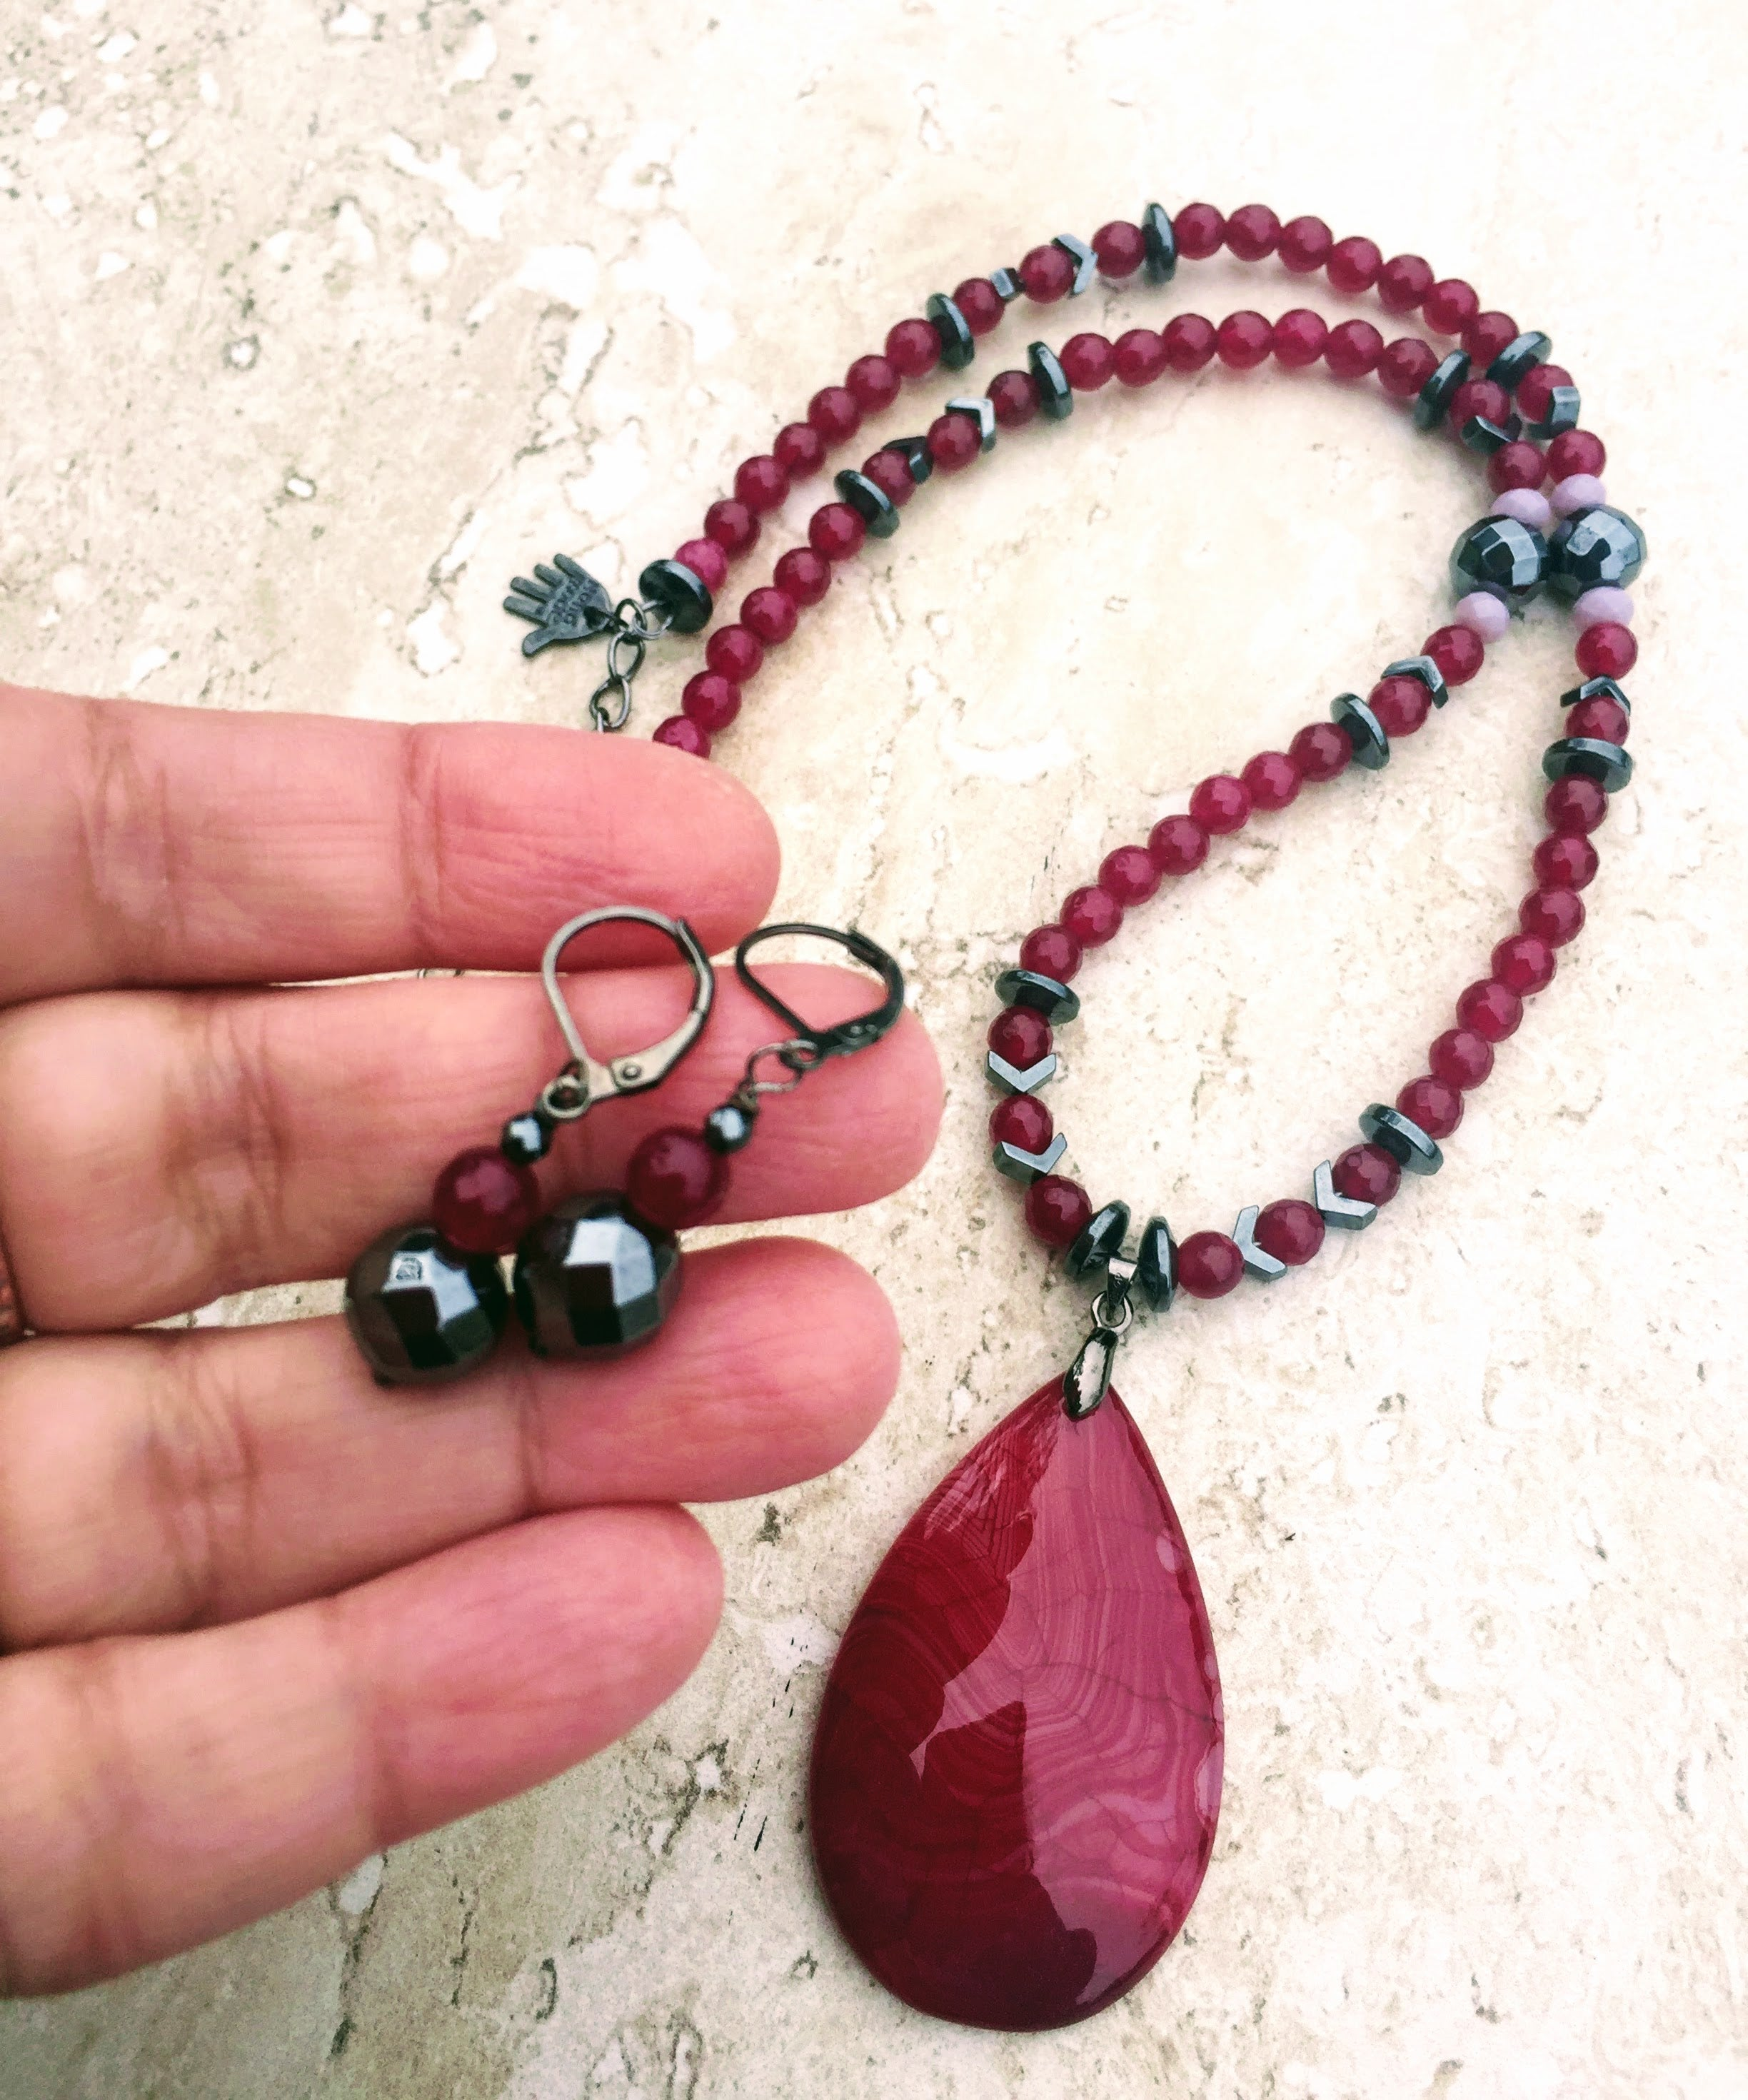 Necklace and Earring Set Statement Piece. Agate and Metal Beaded Jewelry